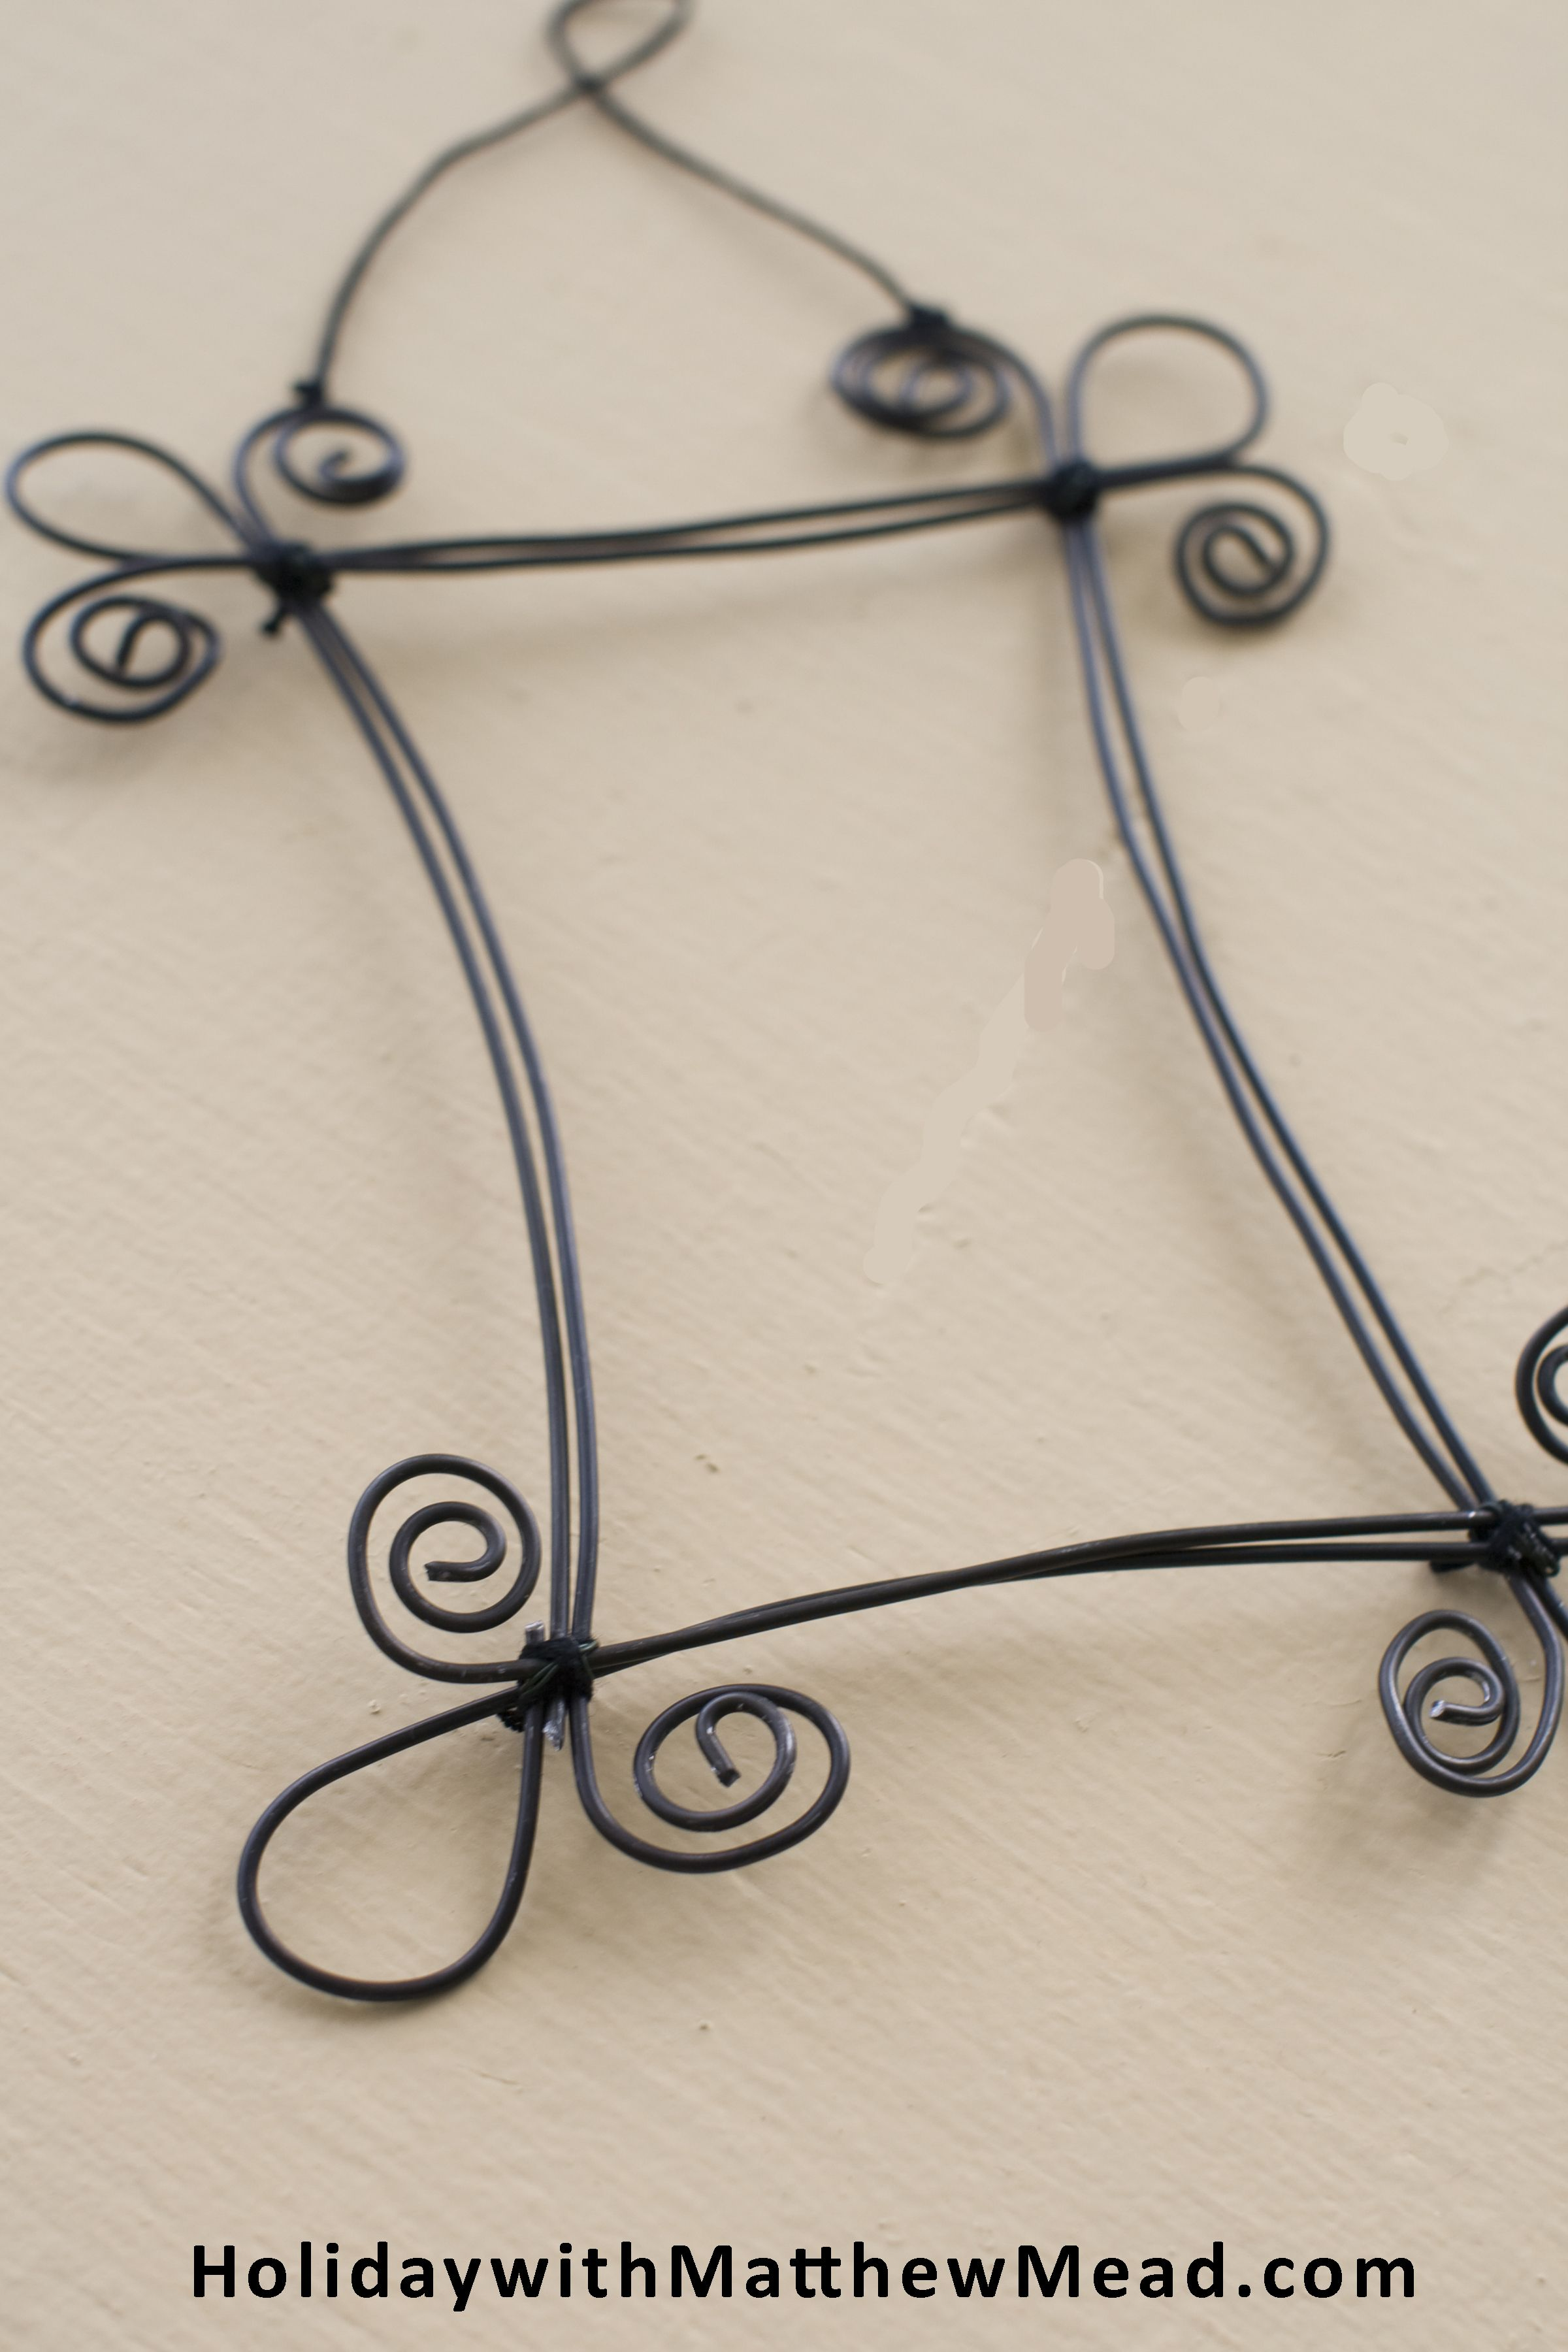 nifty wire frames by Matthew Mead | 試してみたいレシピ | Pinterest ...